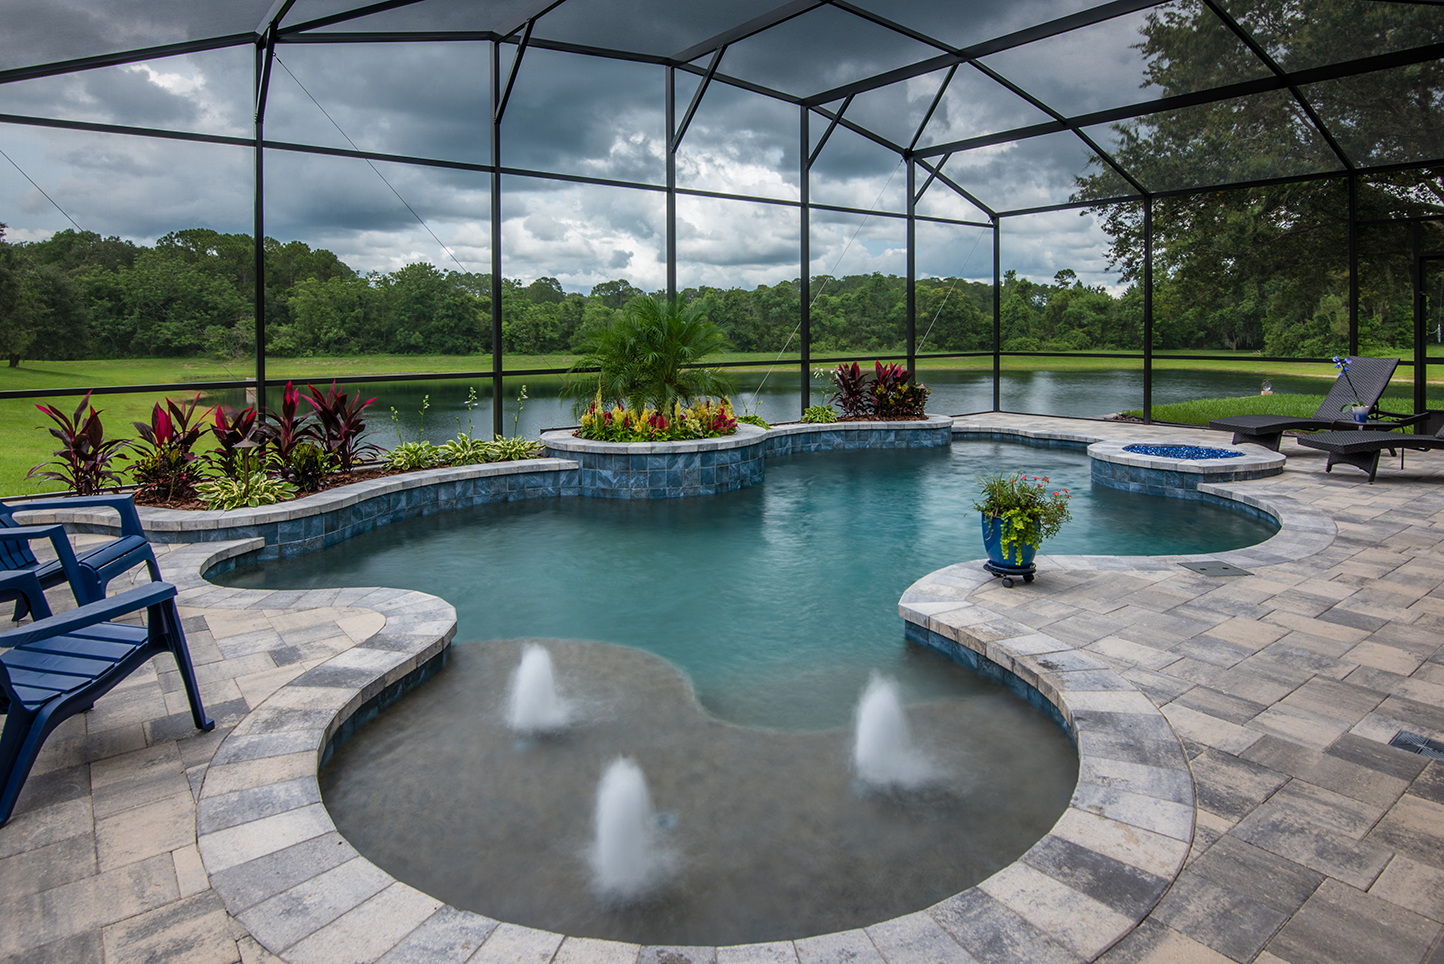 Pool Entry Options - How to Select the One that is Right for Your